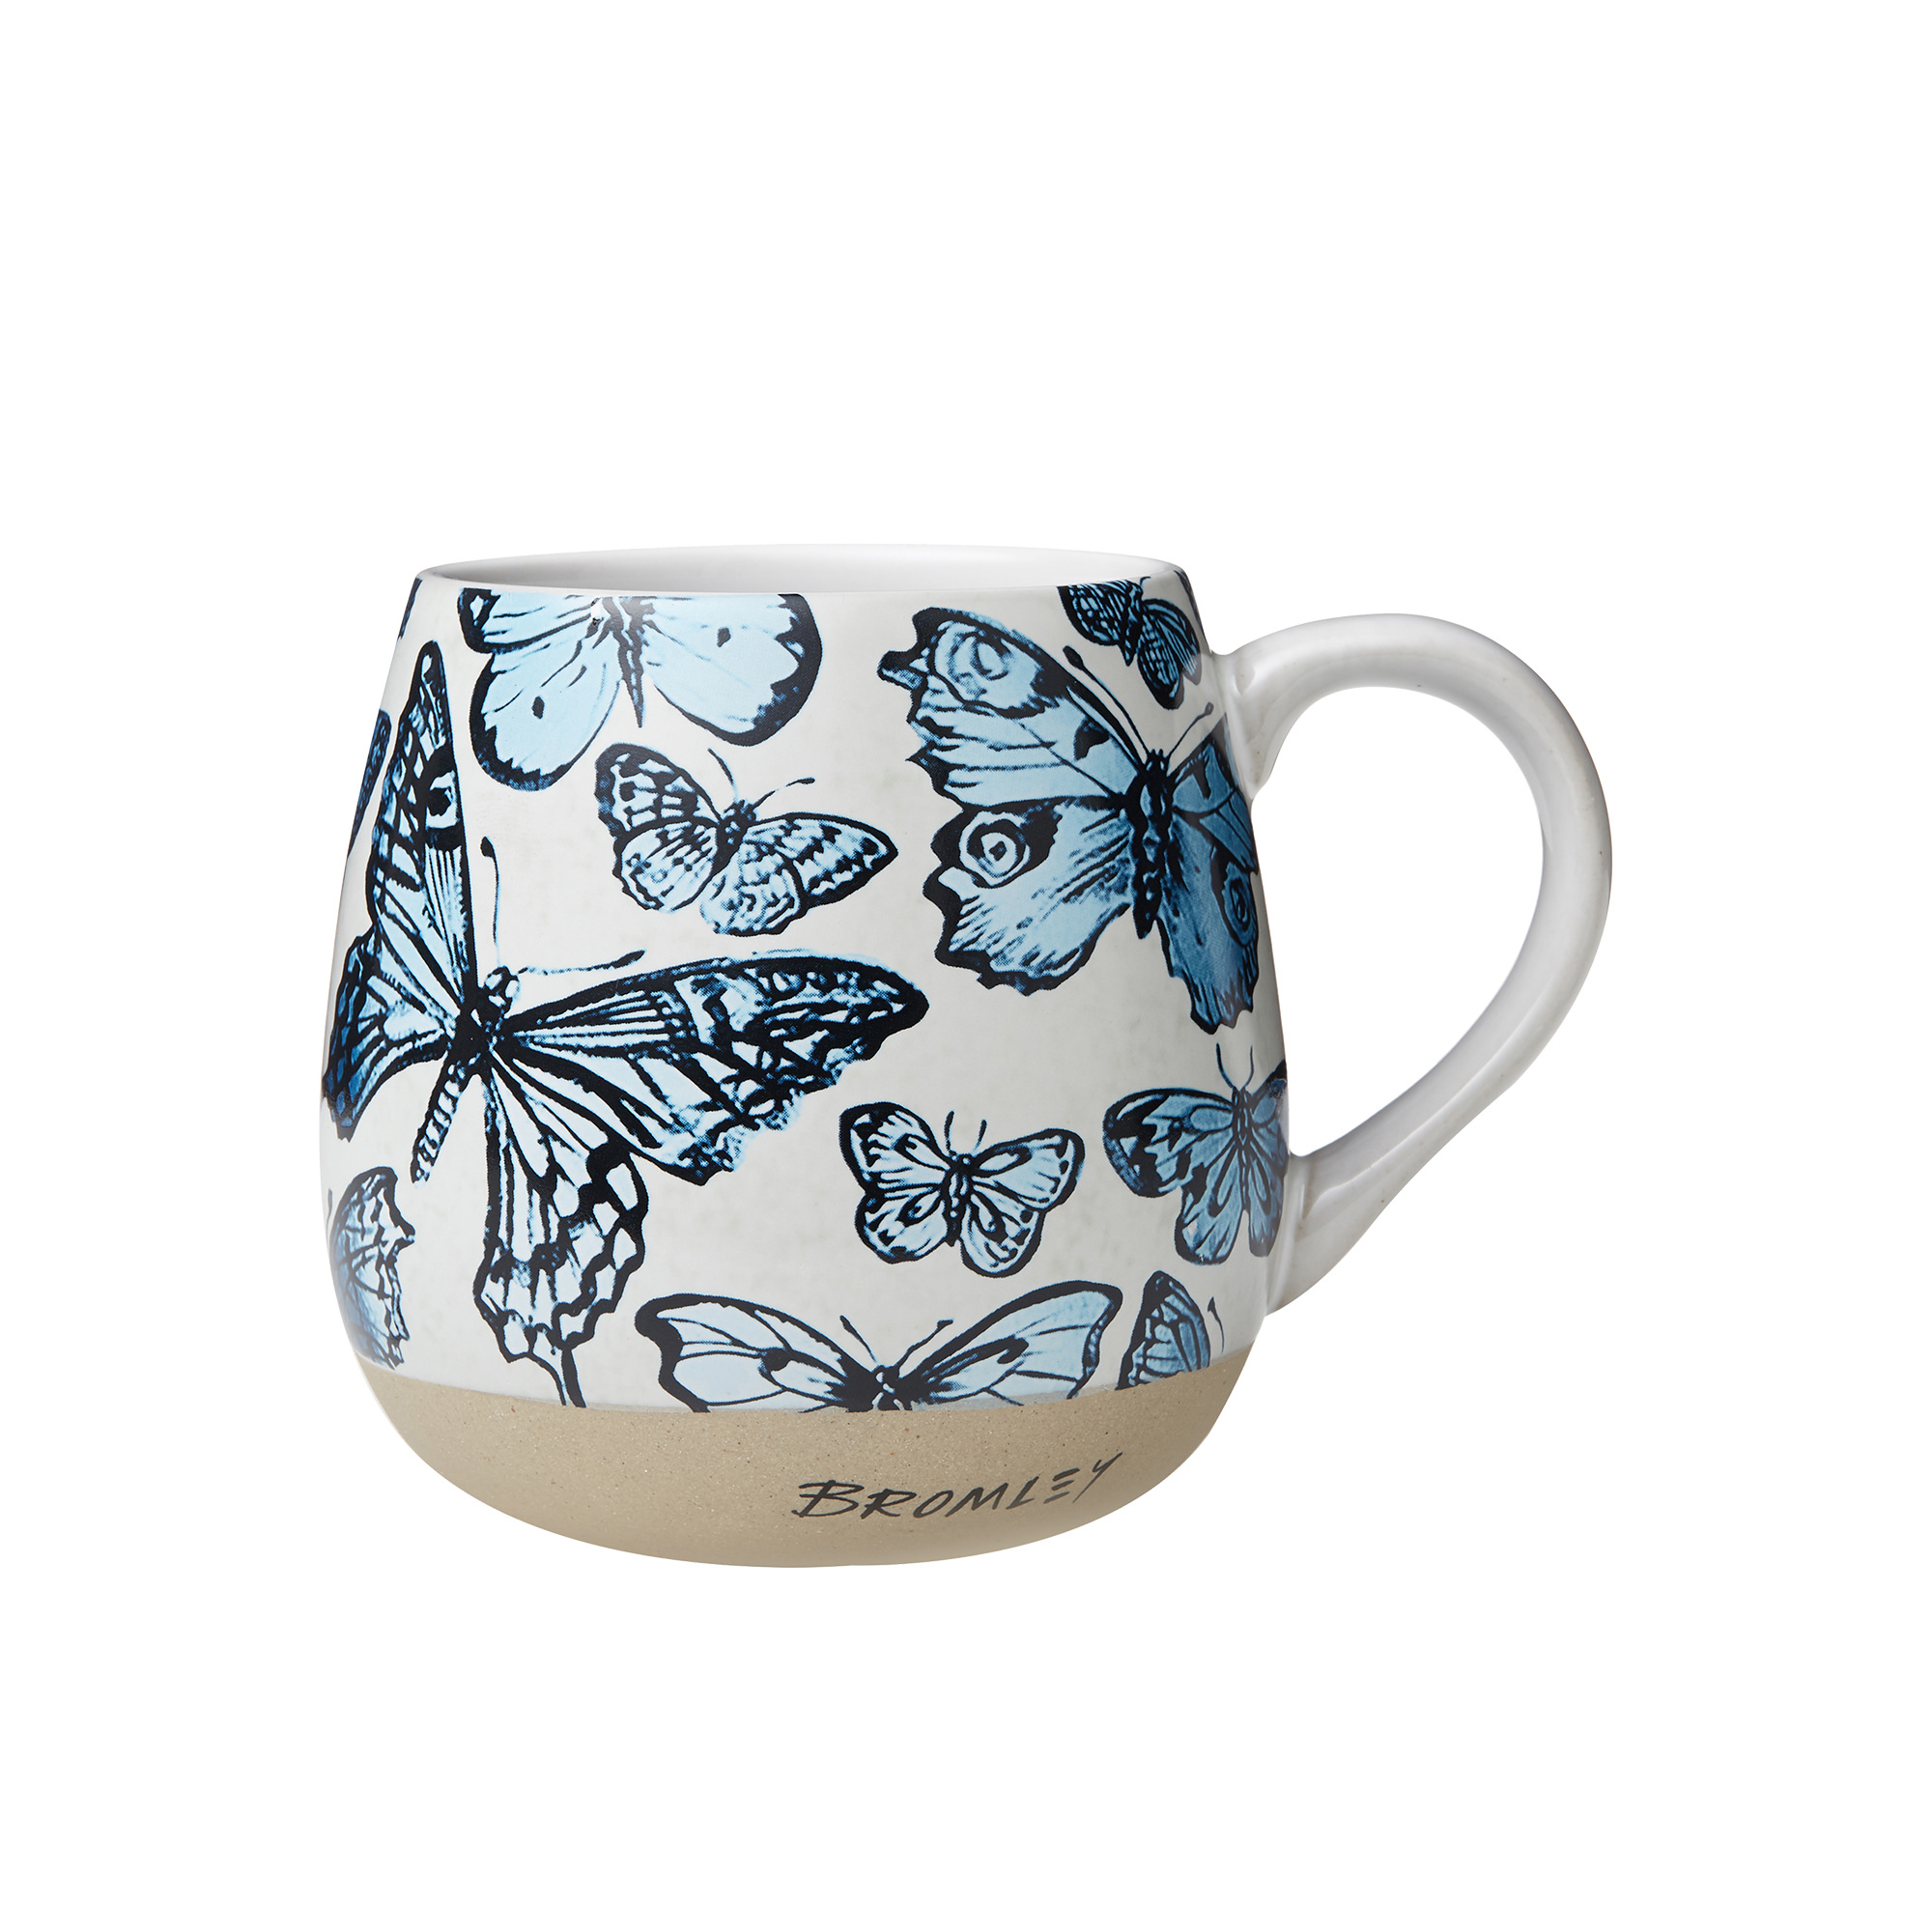 Robert Gordon Bromley X Hug Me Mug 550ml Blue Butterflies